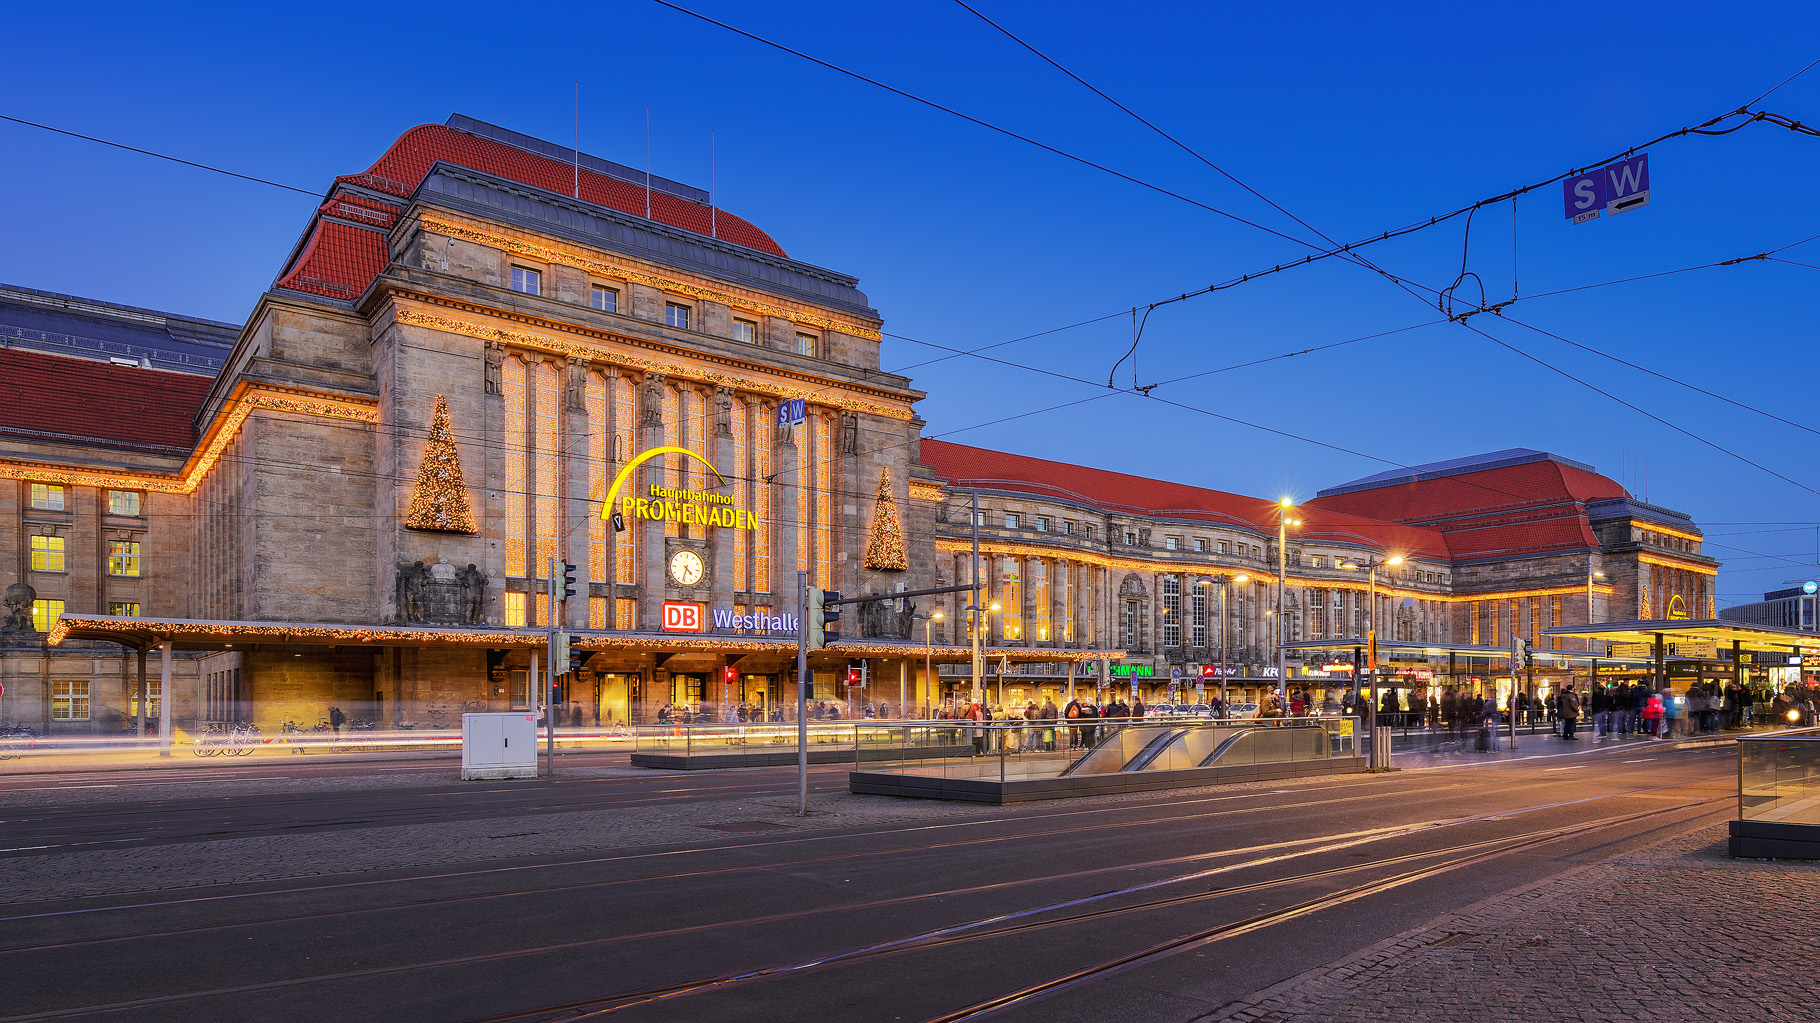 Main Tram Station, Germany